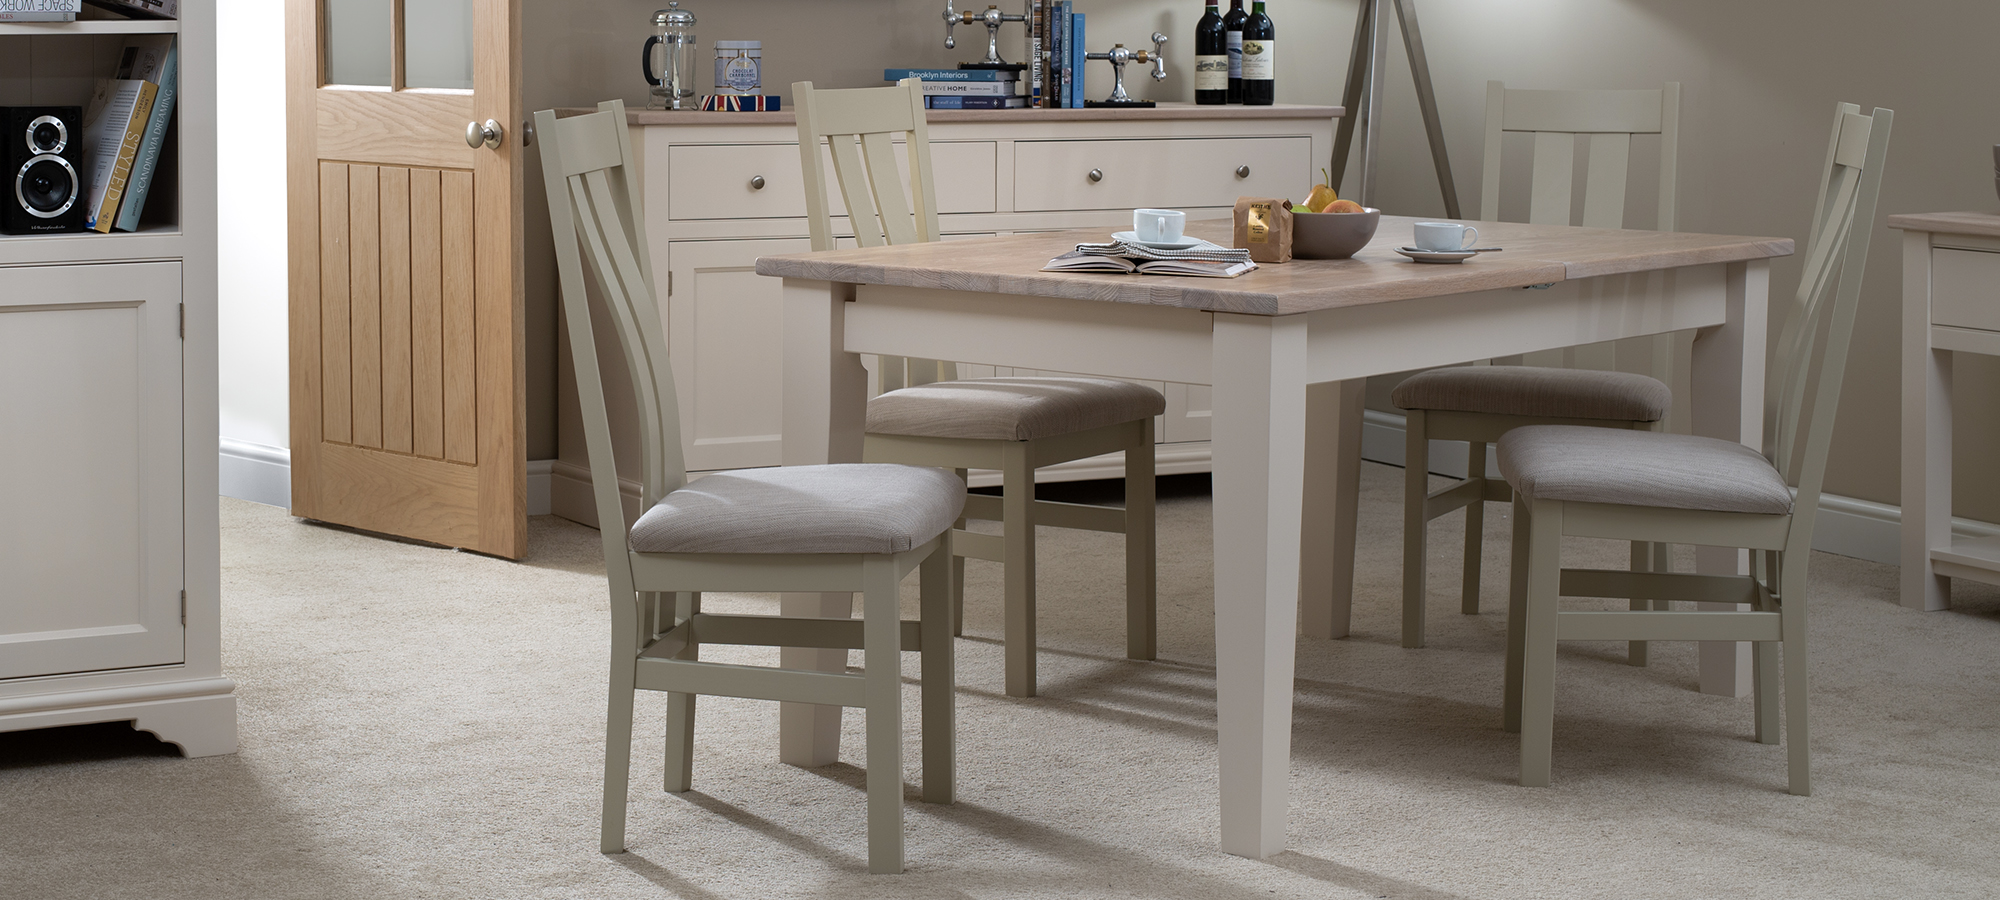 Amberley Dining Table